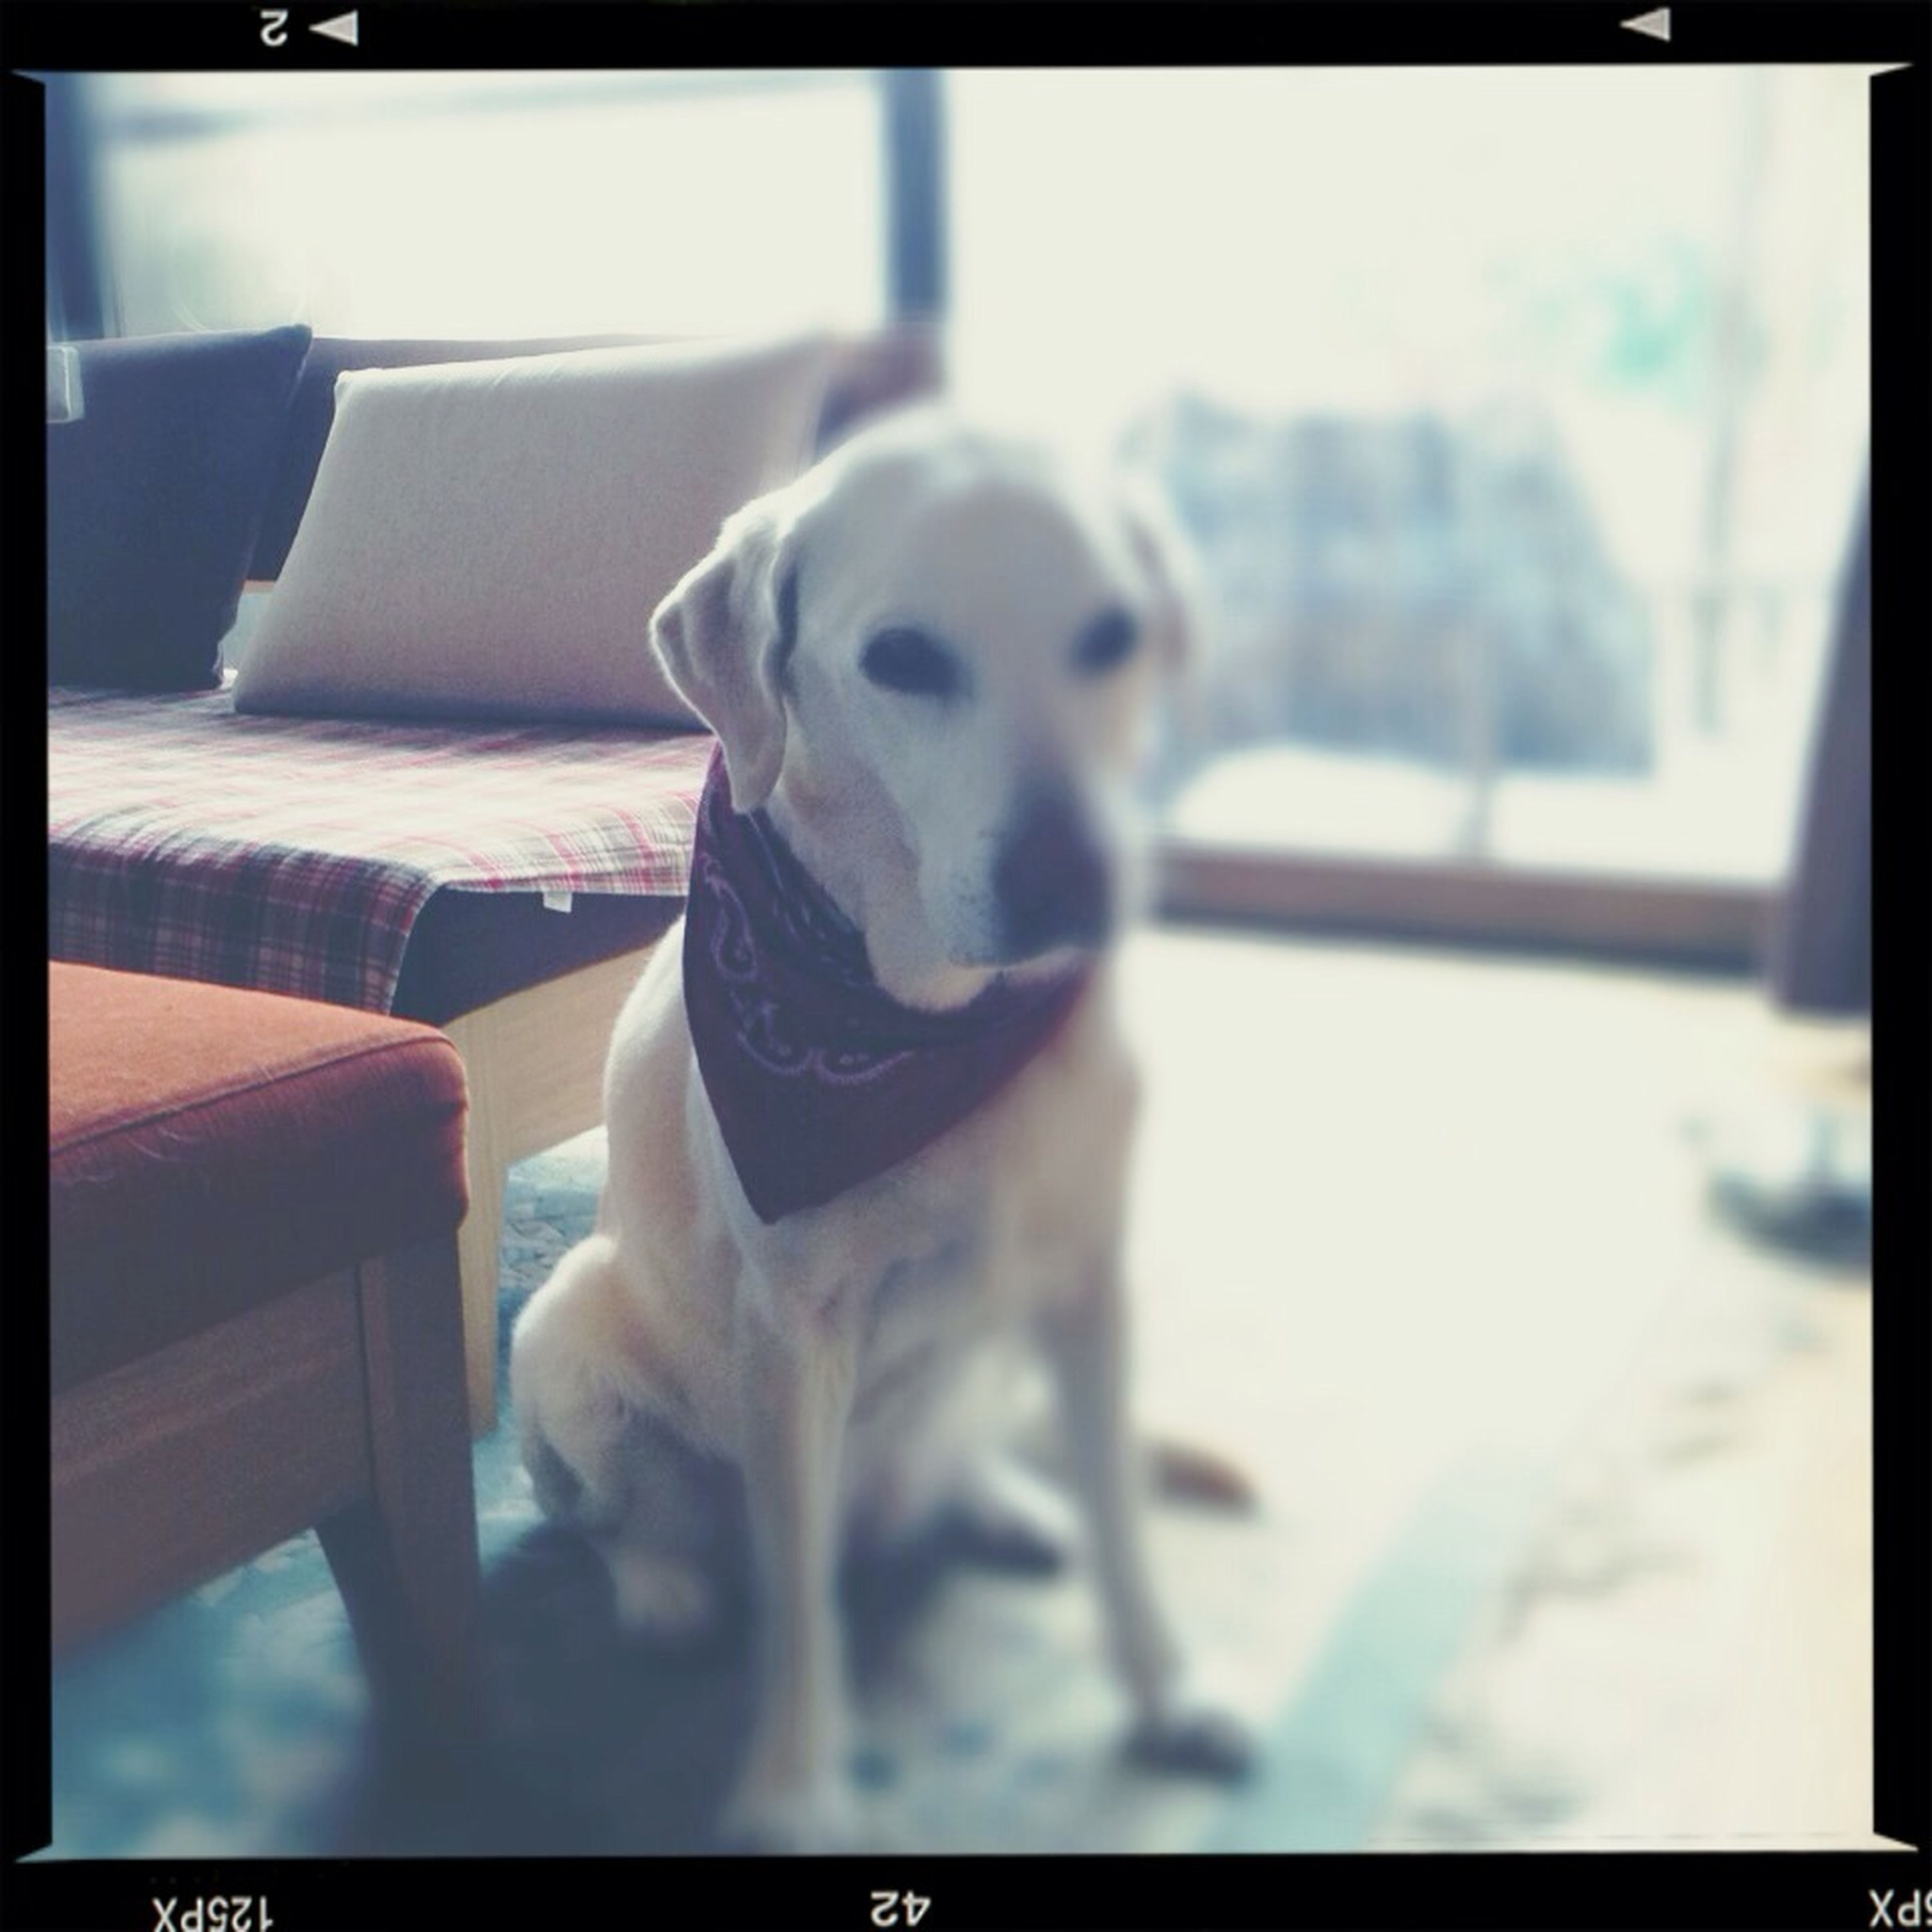 transfer print, auto post production filter, pets, one animal, dog, domestic animals, animal themes, indoors, portrait, looking at camera, mammal, close-up, focus on foreground, sitting, selective focus, window, day, animal head, front view